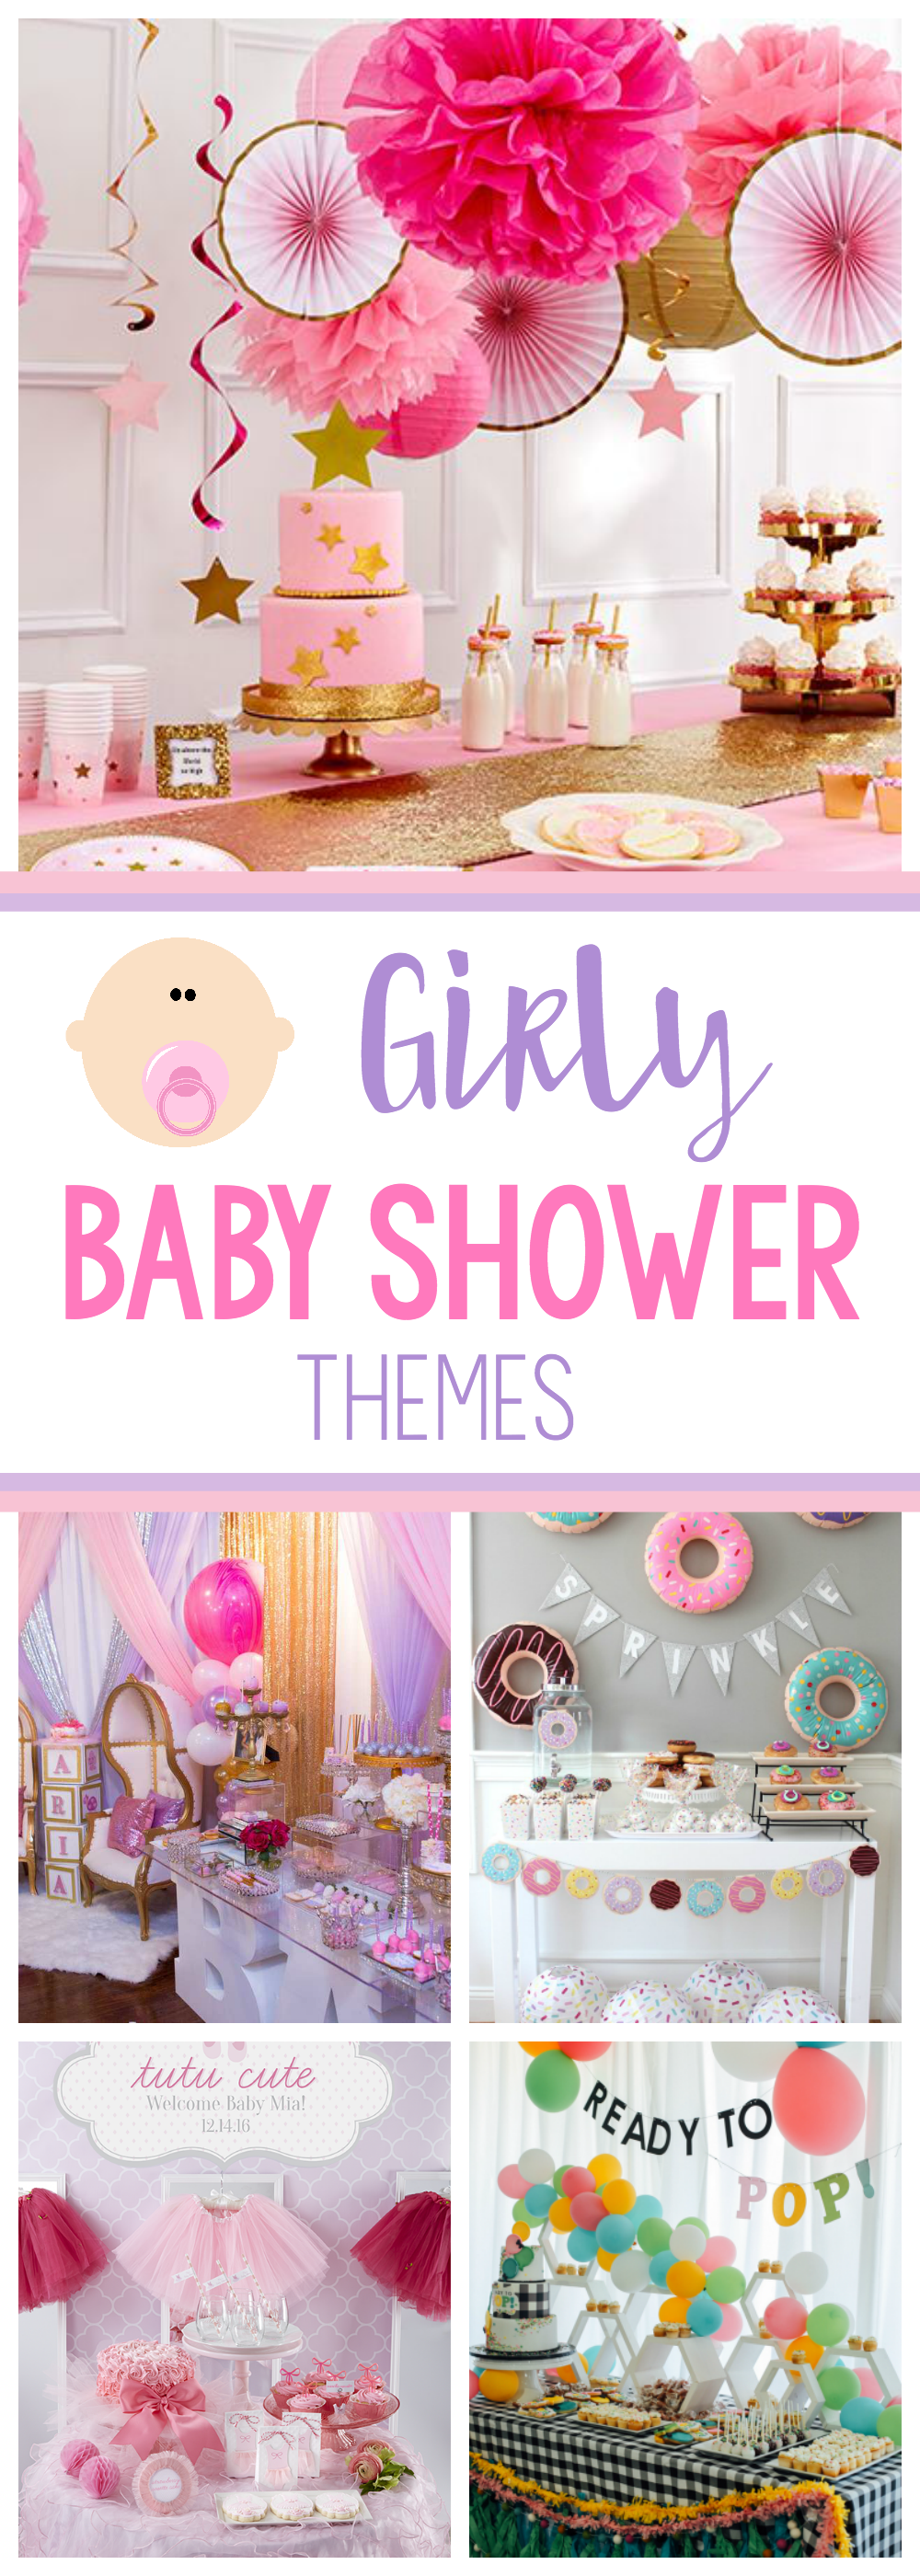 Cute Girl Baby Shower Themes and Ideas